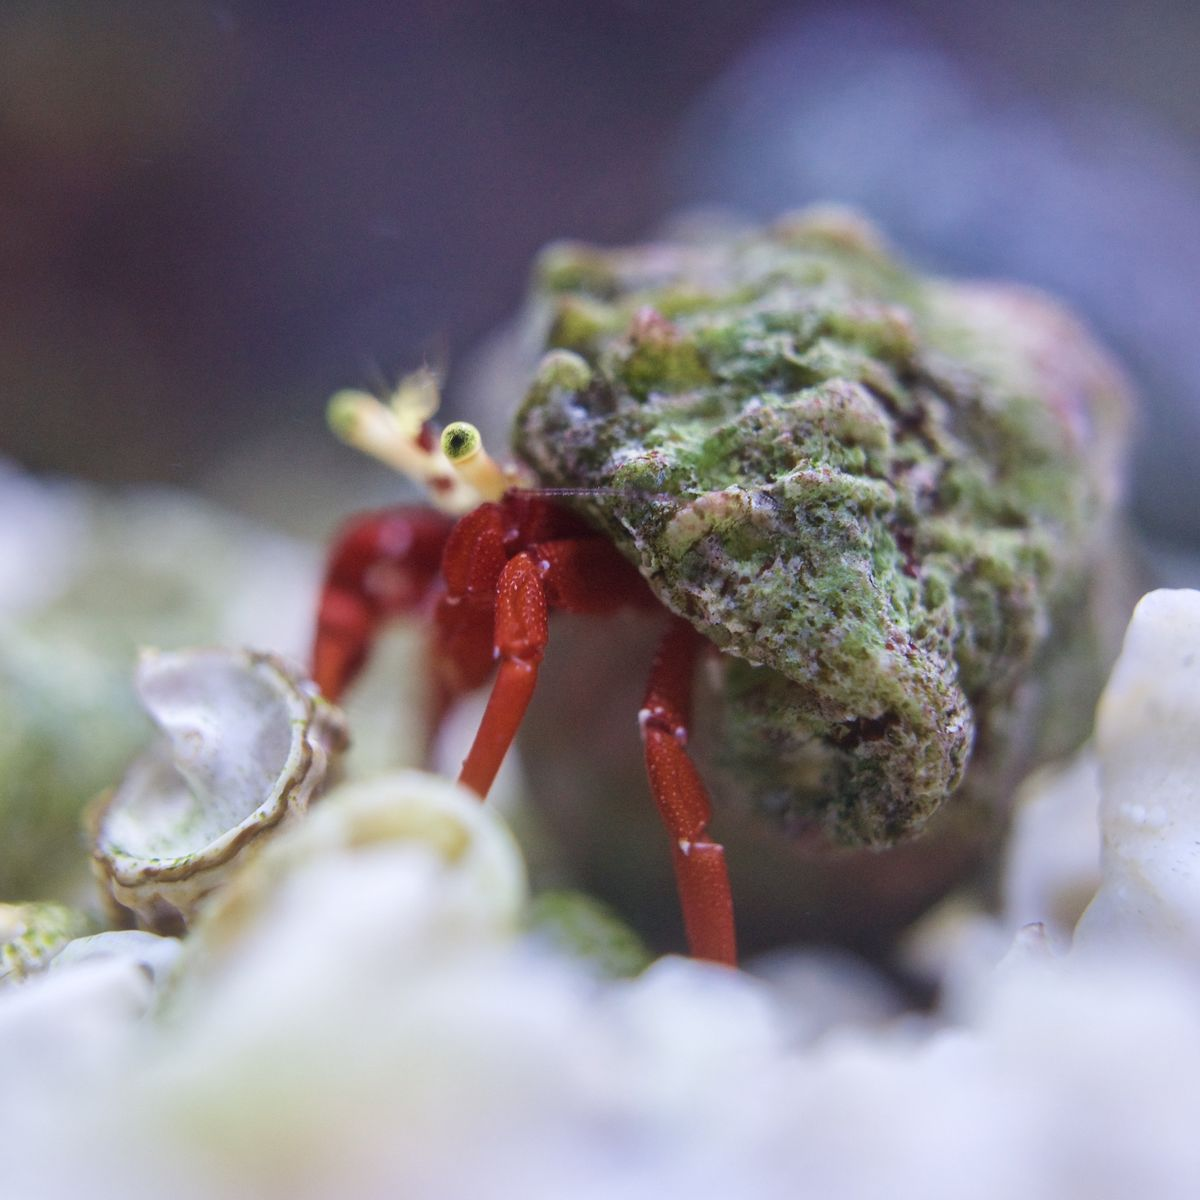 Horatio, The Scarlet Legged Reef Crab